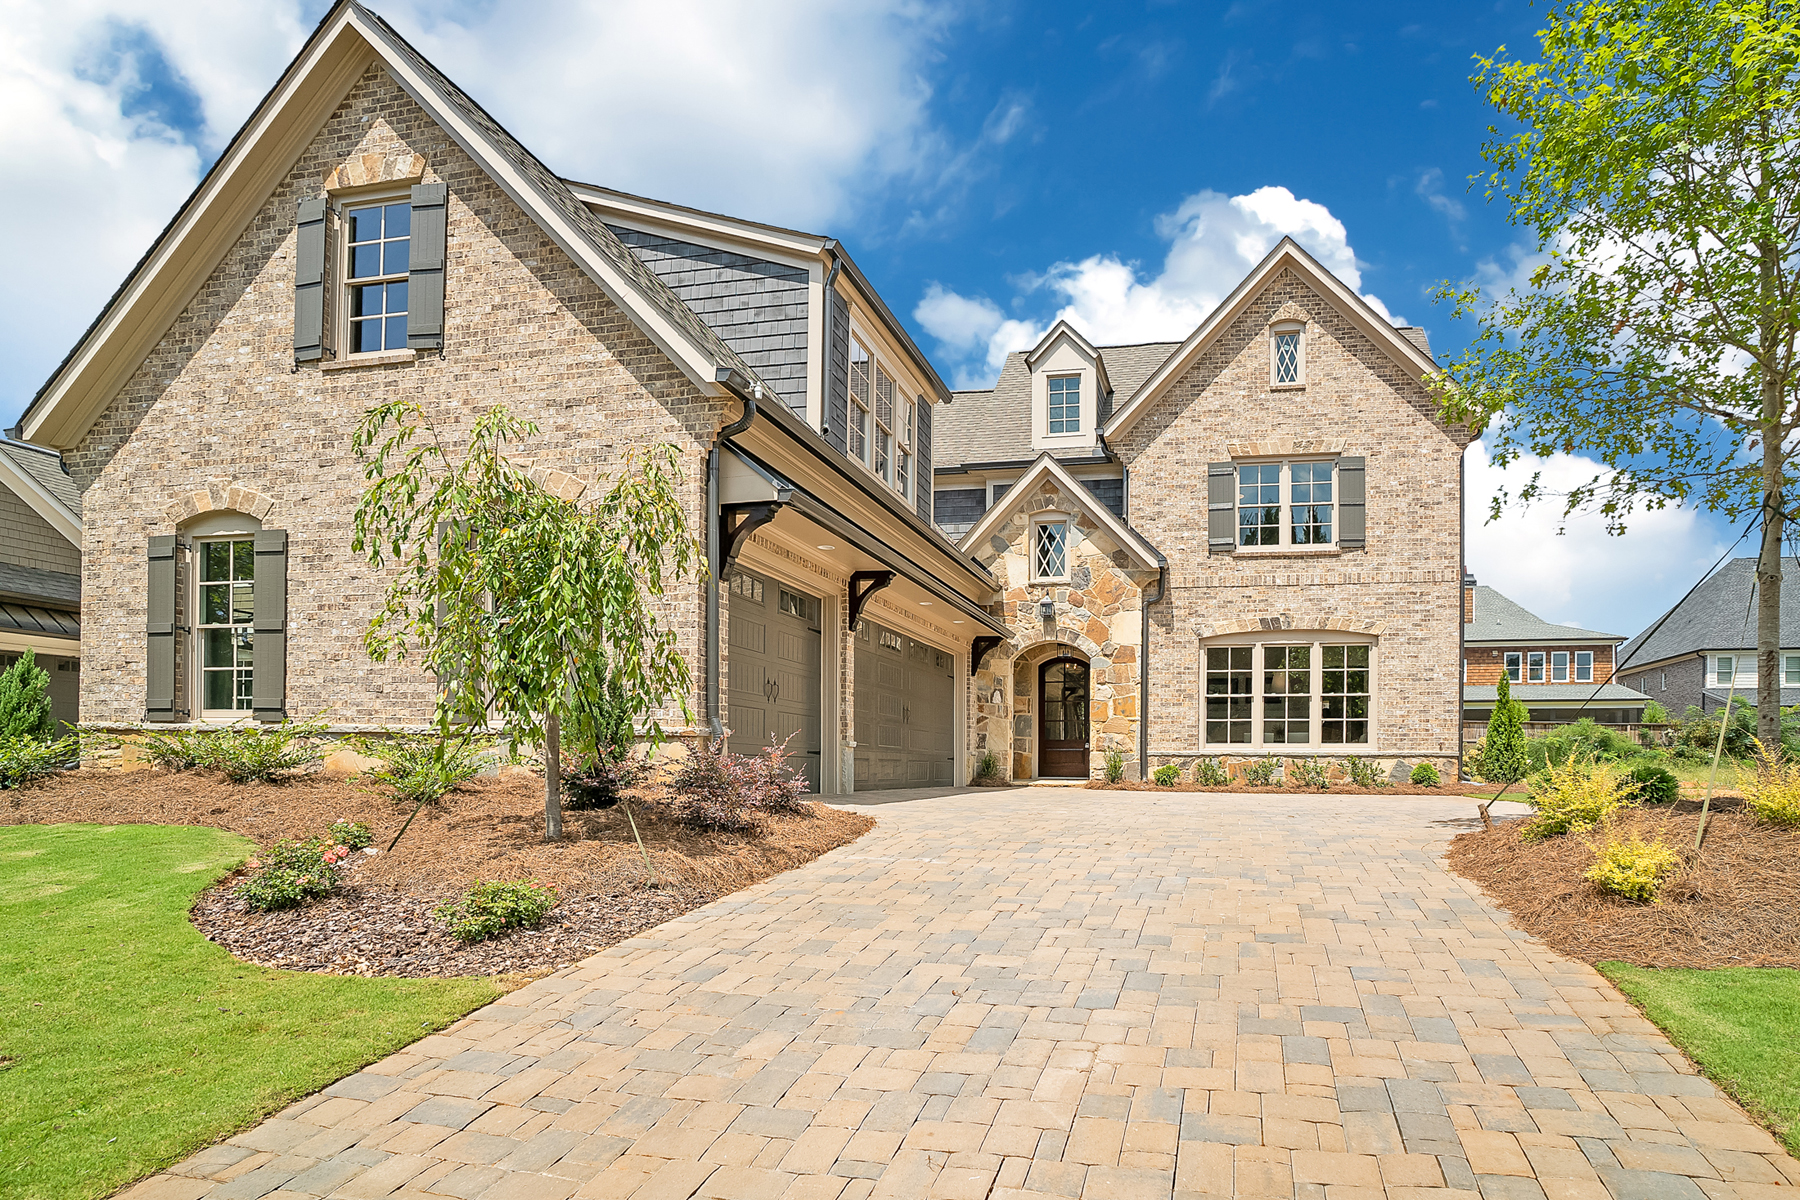 Single Family Home for Sale at Luxury New Construction In The Heart Of East Cobb 4596 Oakside Point Marietta, Georgia 30067 United States